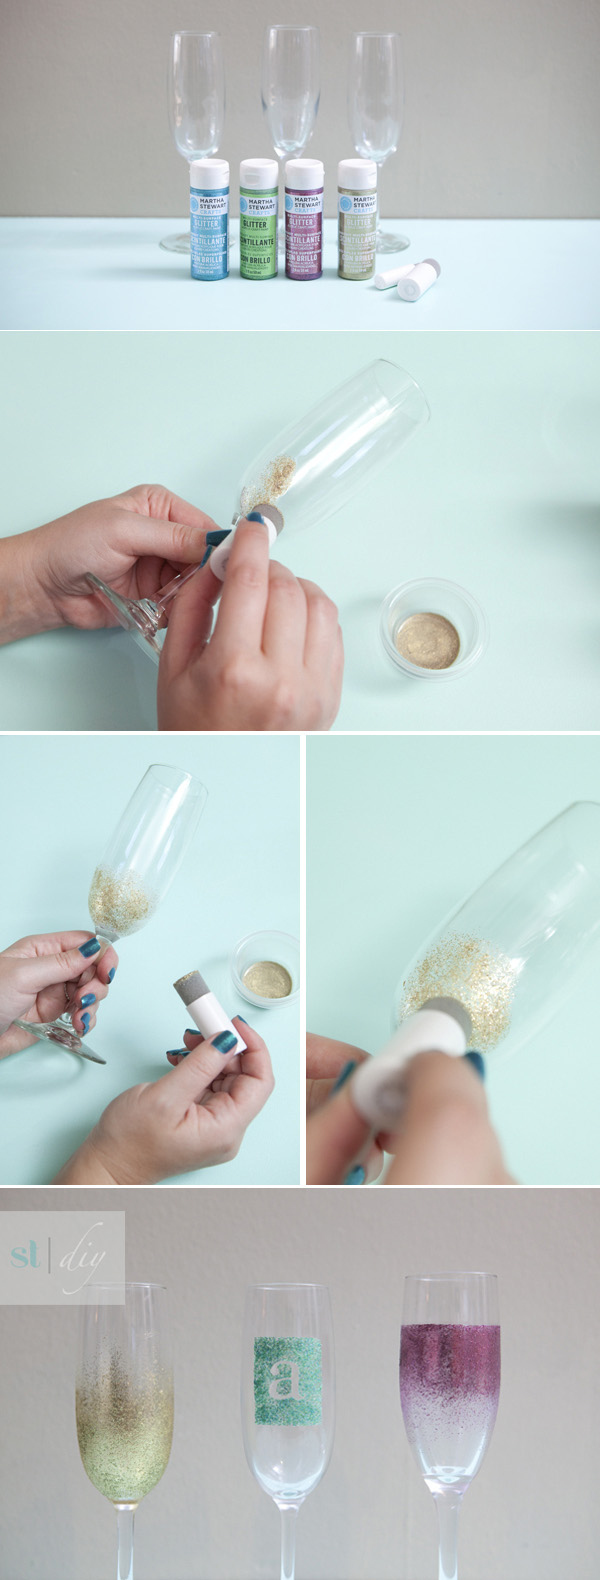 20 Creative and Interesting Things You Can Do with Wine Glasses (5)